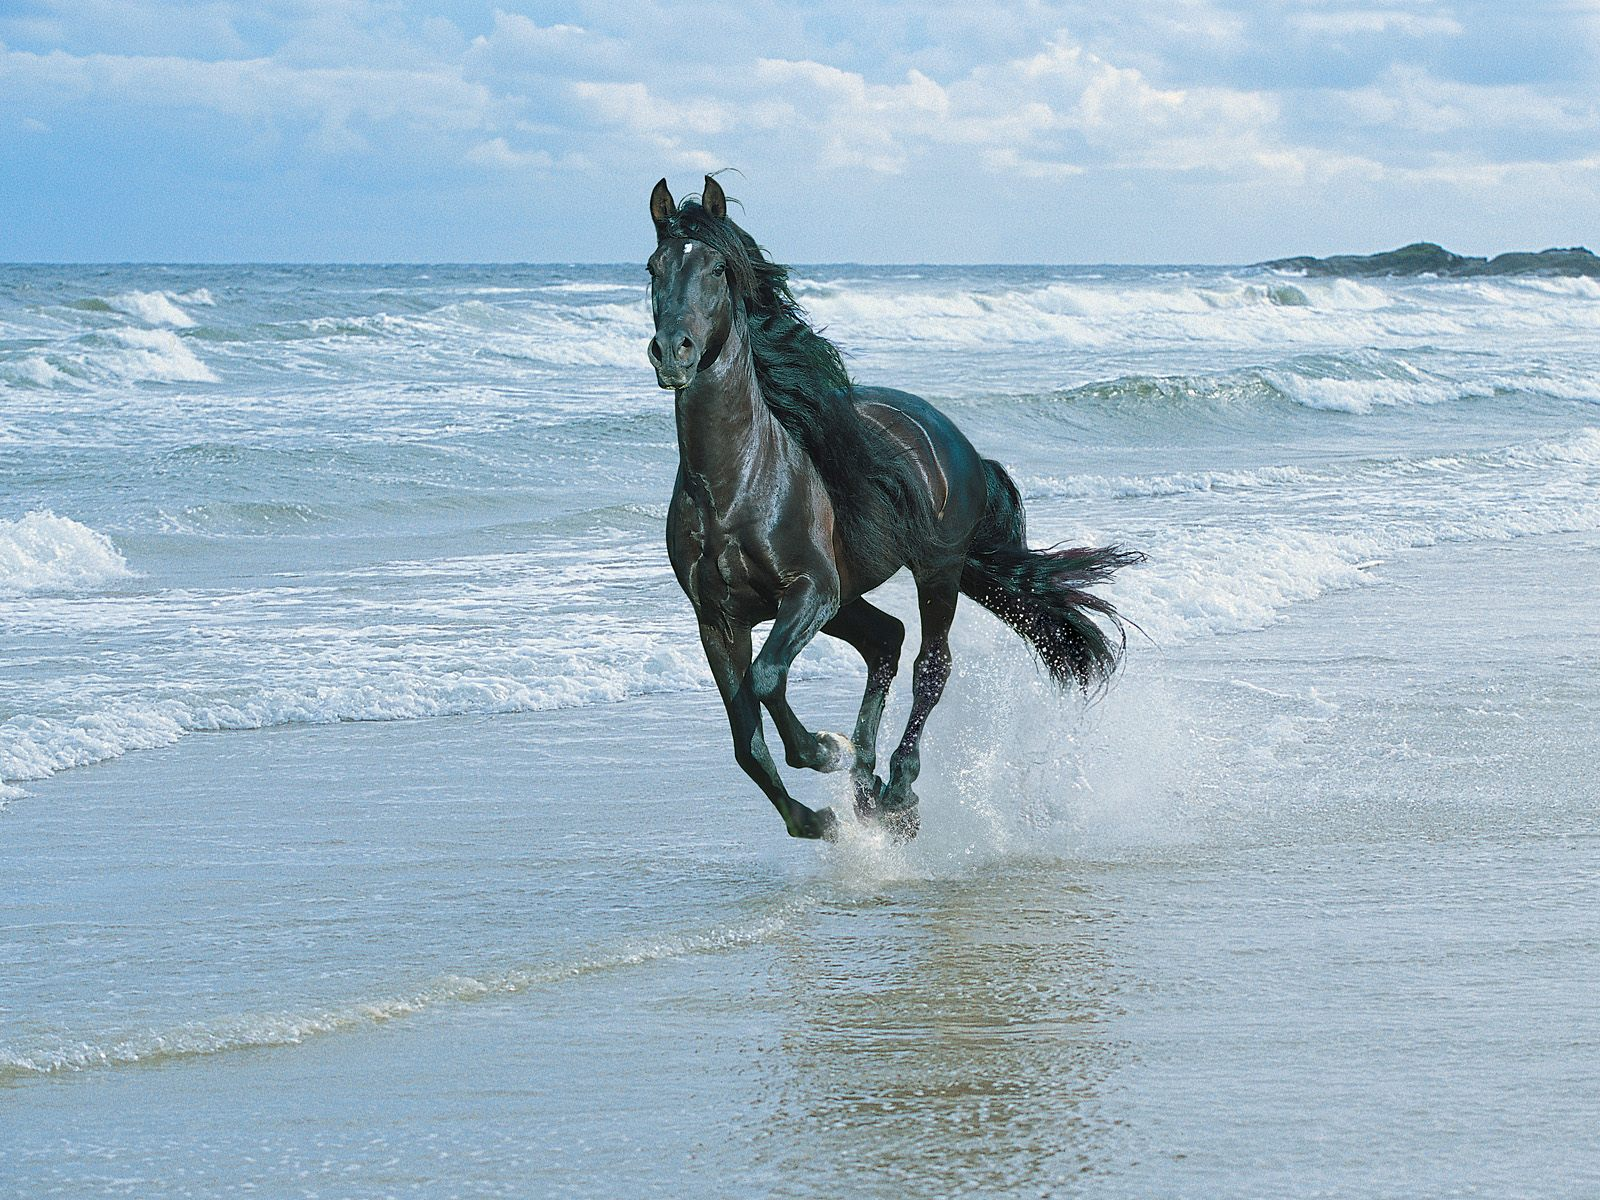 Horse Mobile Wallpapers - photo#12